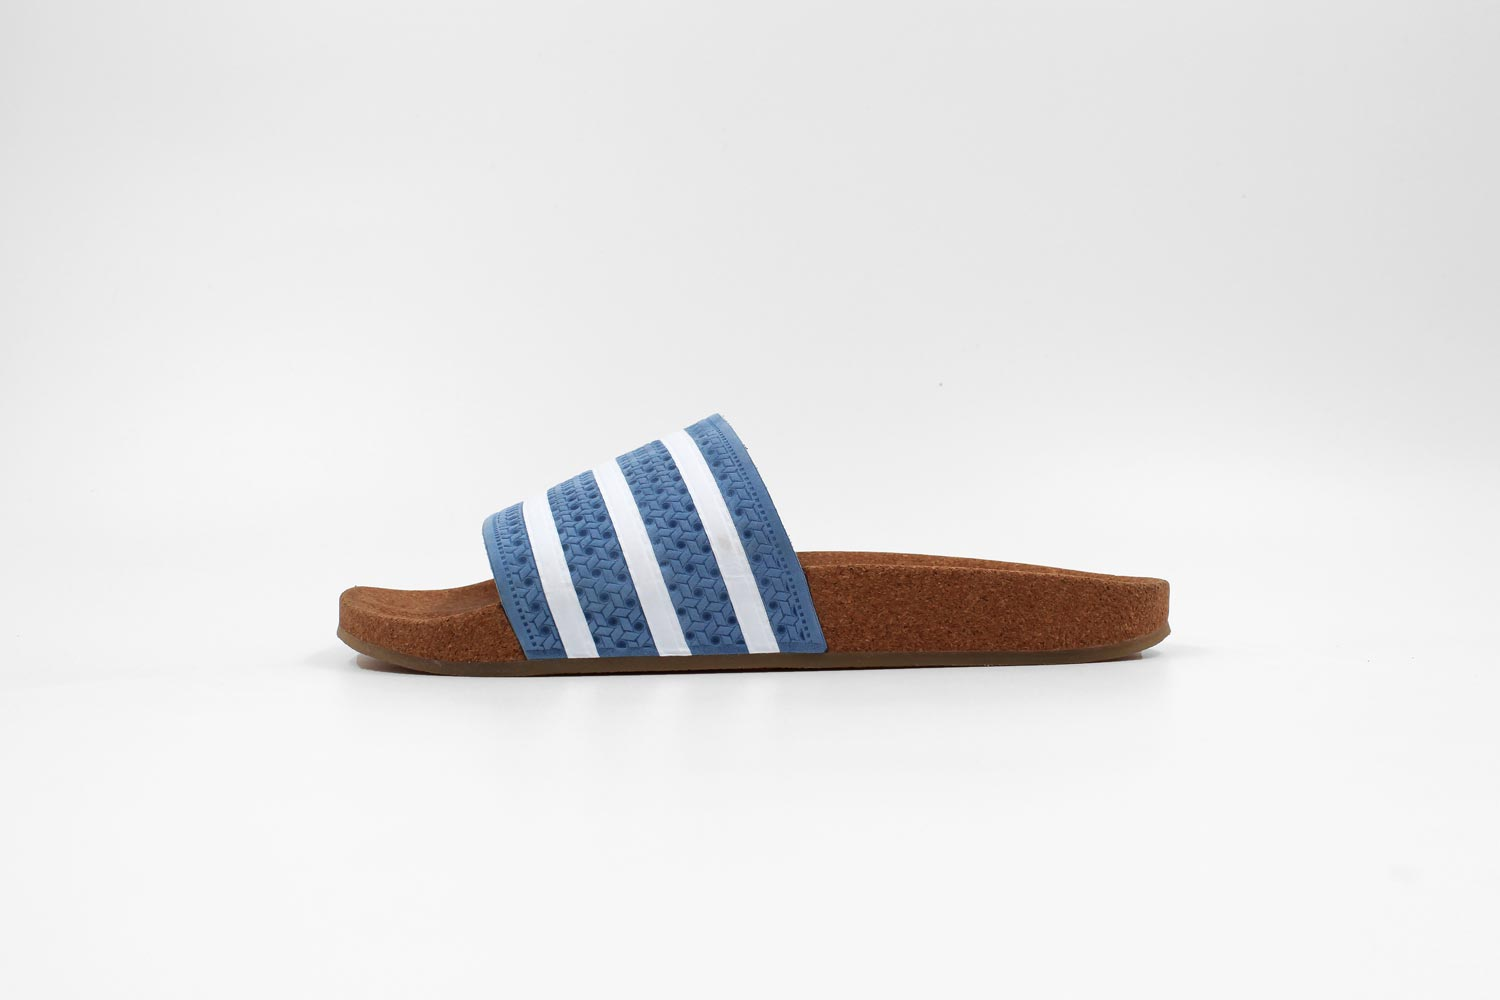 adidas Adilette Cork Slipper Blue